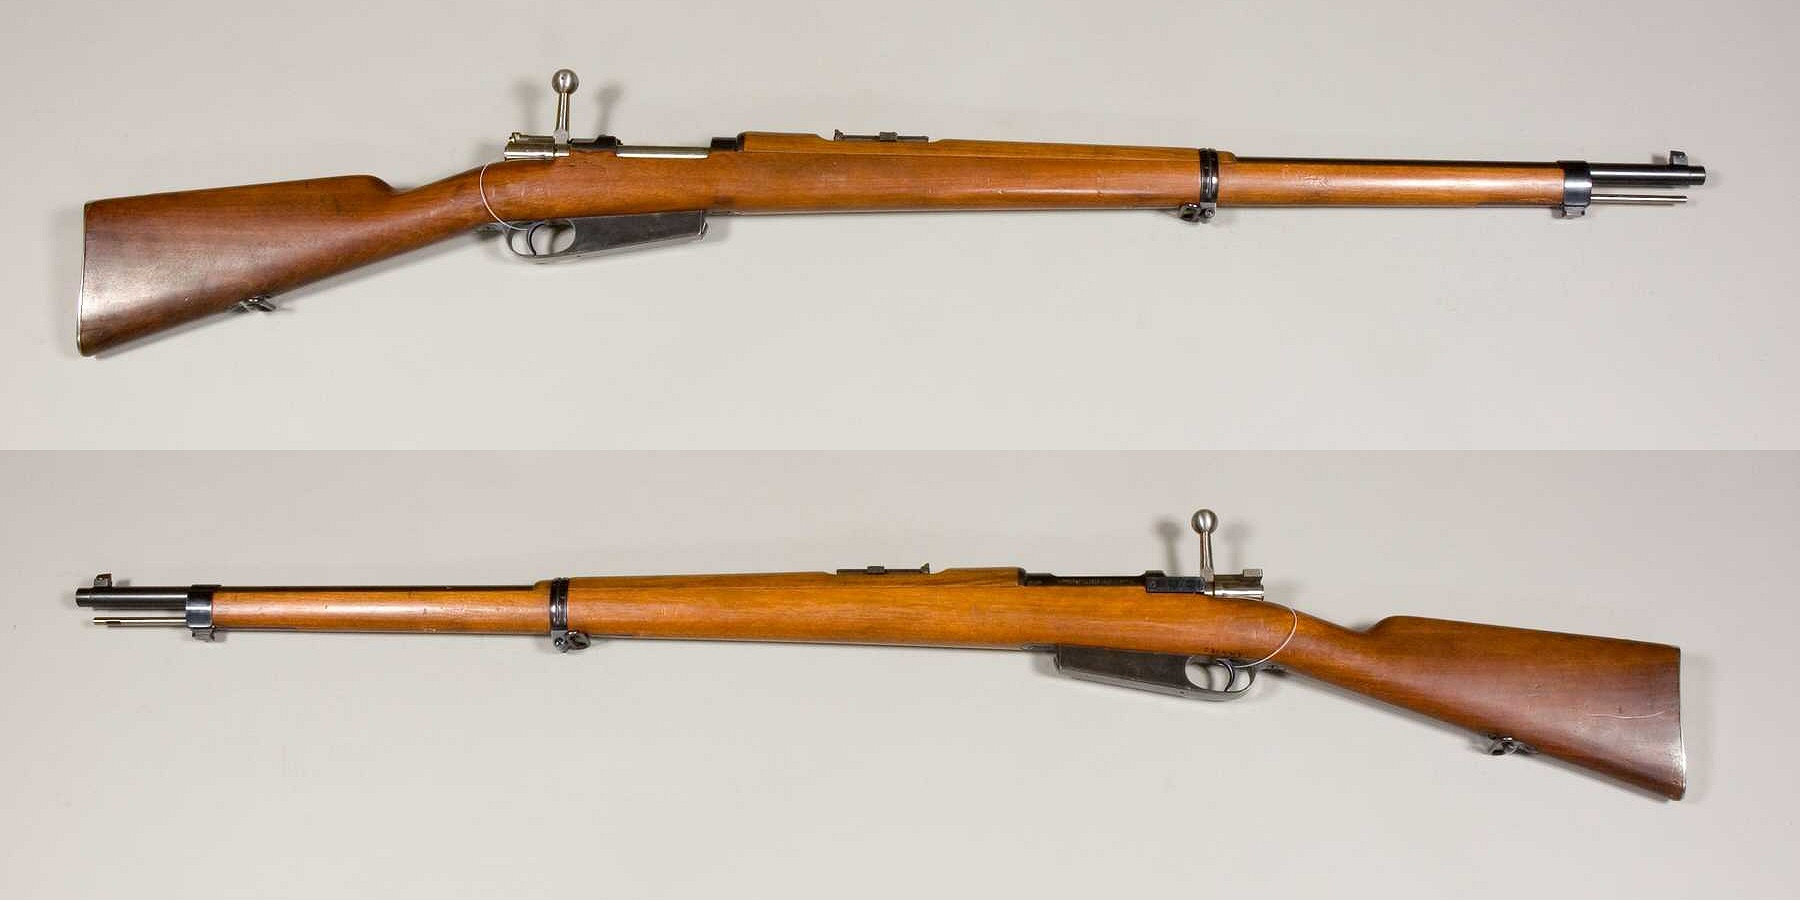 Mauser Military Wiki